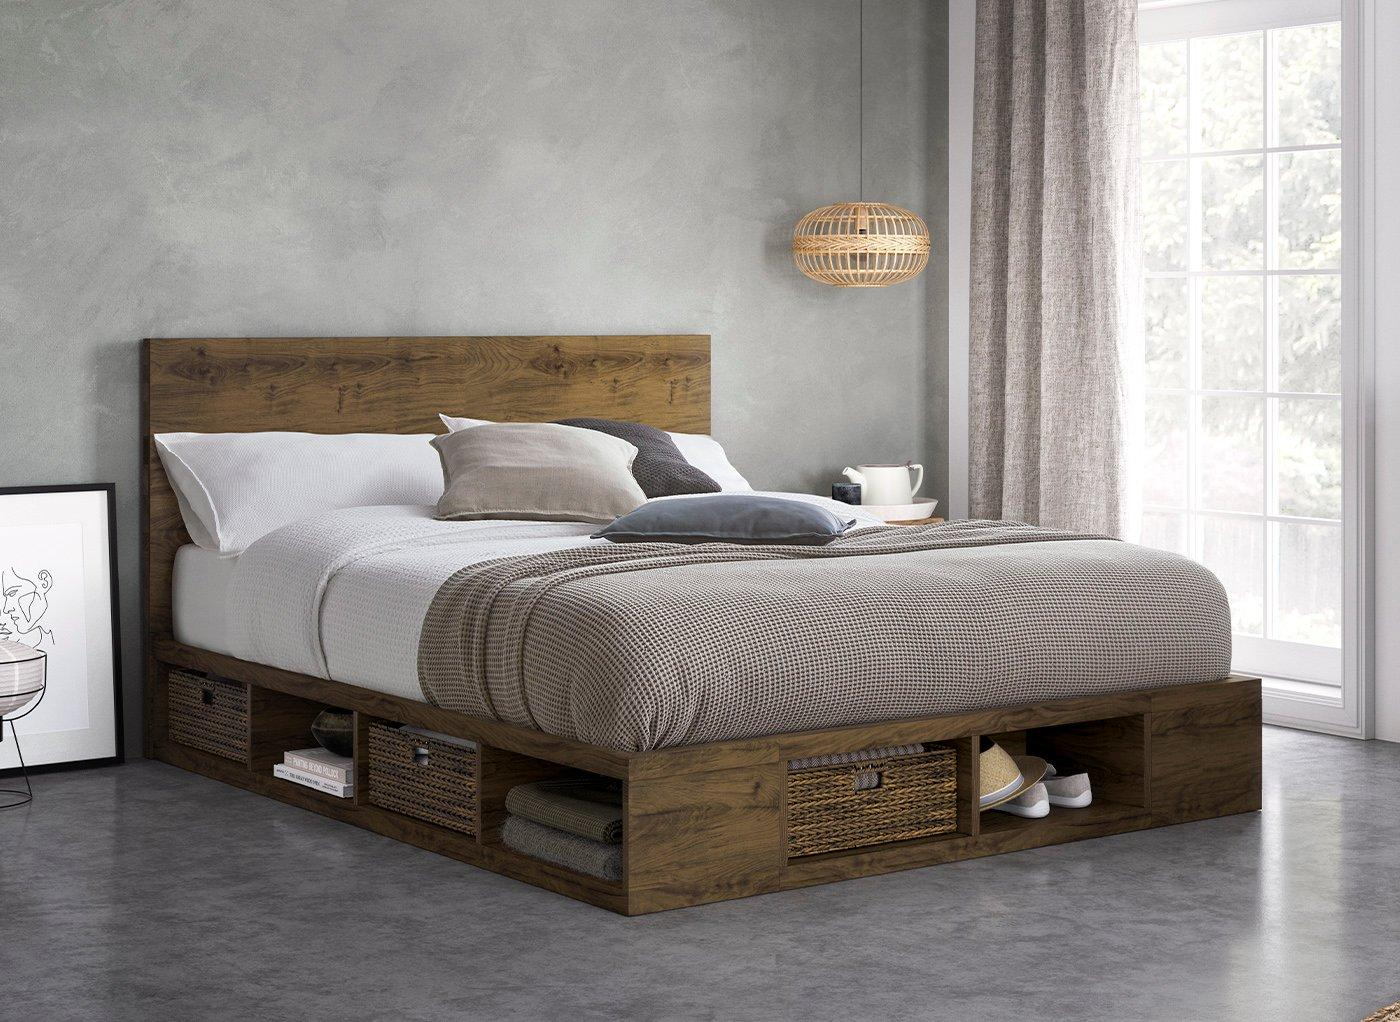 Merveilleux Wilkes Wooden Storage Bed Frame | Wooden Beds | Beds ...